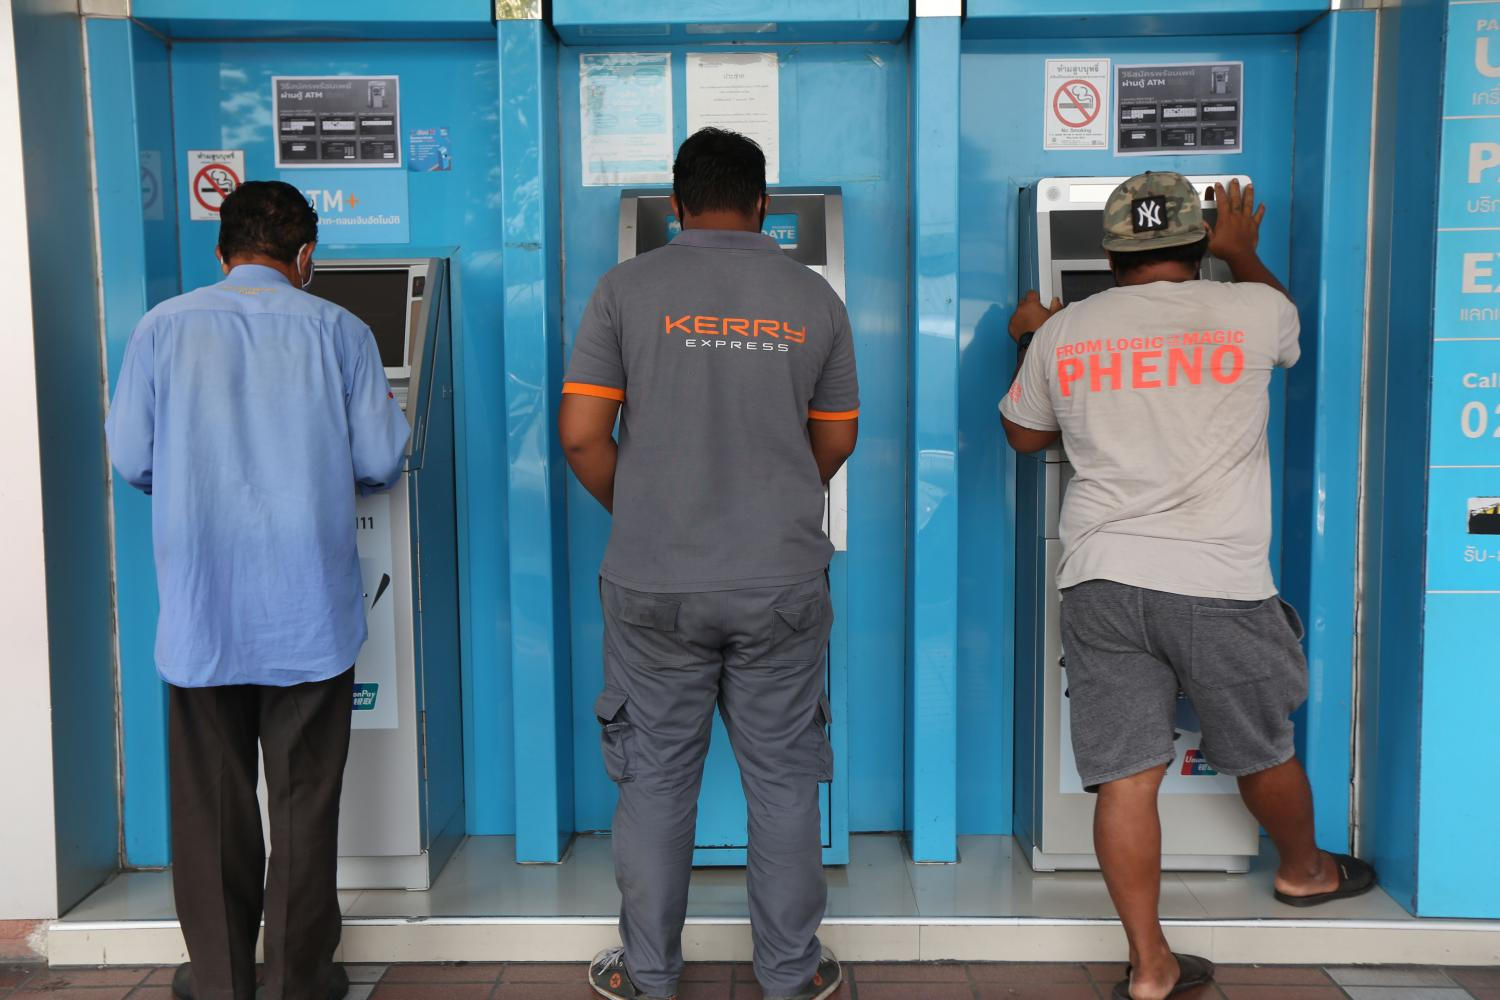 City people withdraw 5,000-baht cash handouts from ATM machines. The handouts are from the government as part of a relief package to alleviate hardship as a result of tough measures to curb the Covid-19 outbreak, which has caused an economic downturn.(Photo by Varuth Hirunyatheb)